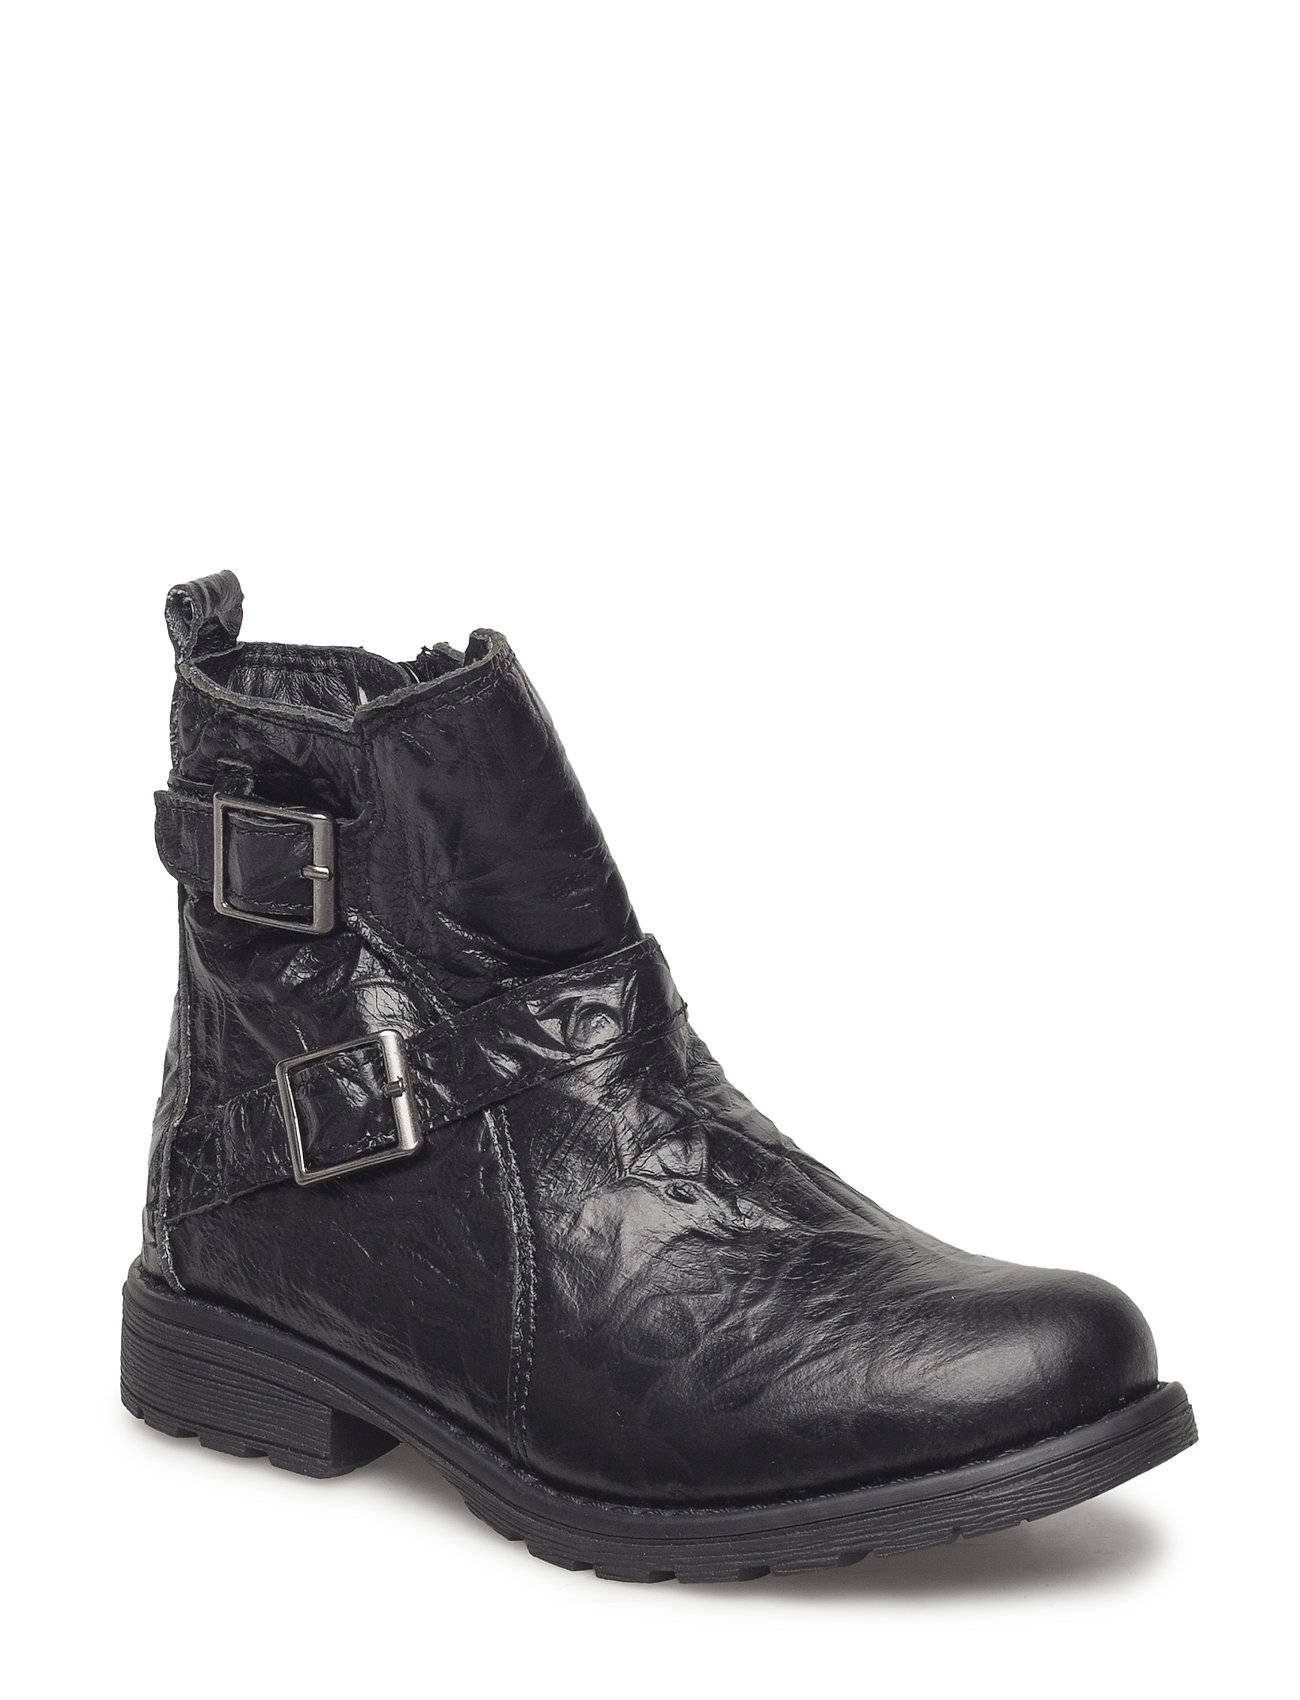 Move by Melton Girls - Winter Boot W/Buckles